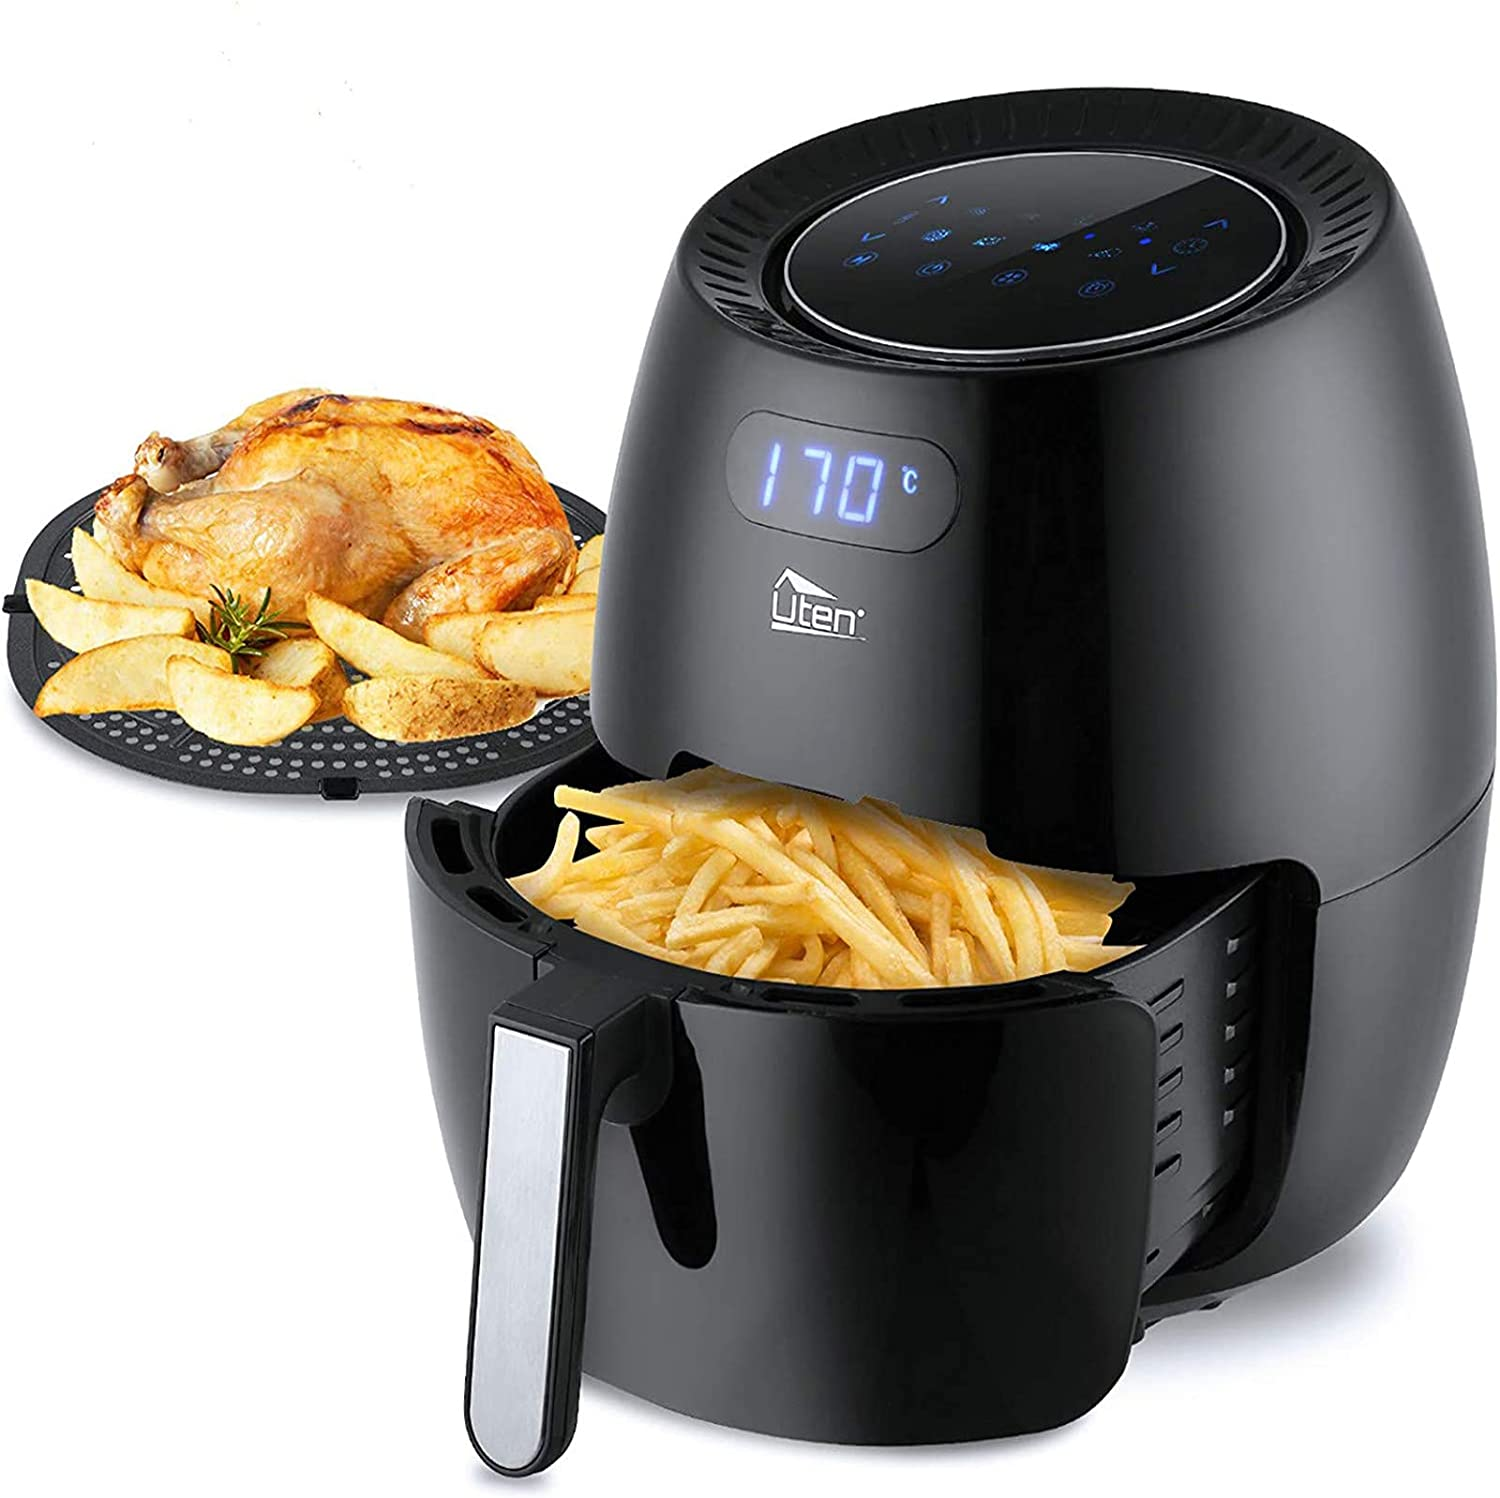 Air Fryer Uten 6 5l Power Air Fryer With Digital Display Rapid Air Circulation System Adjustable Temperature And 30 Minute Timer For Healthy Oil Free Low Fat 1800w Amazon Co Uk Kitchen Home